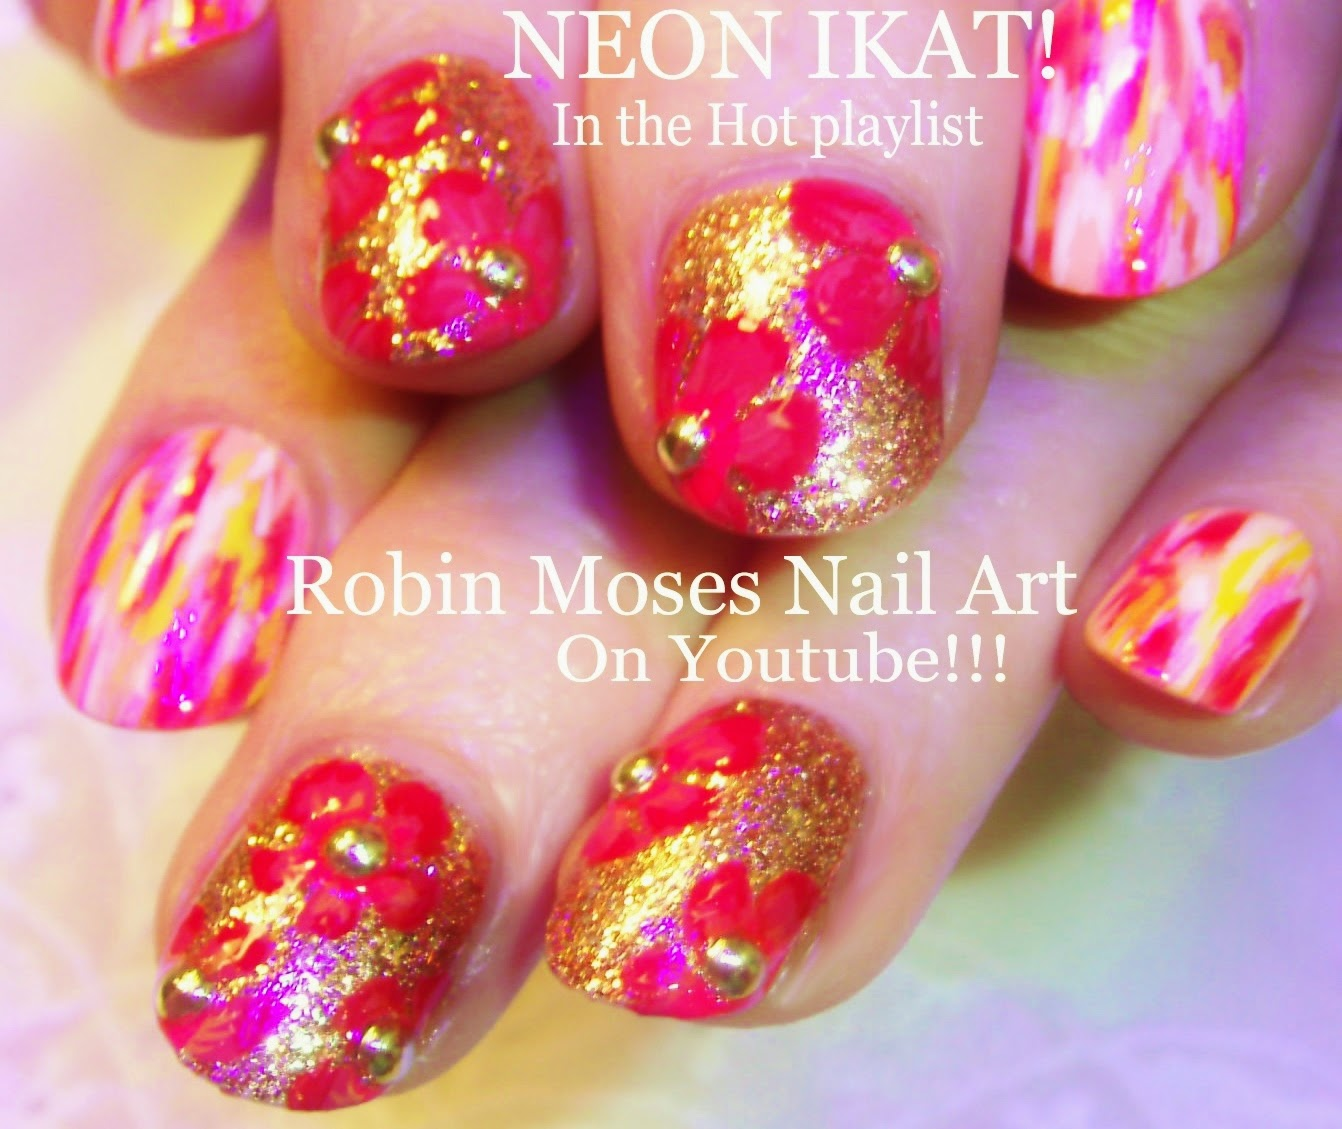 Robin Moses Nail Art February 2015: Robin Moses Nail Art: March 2015